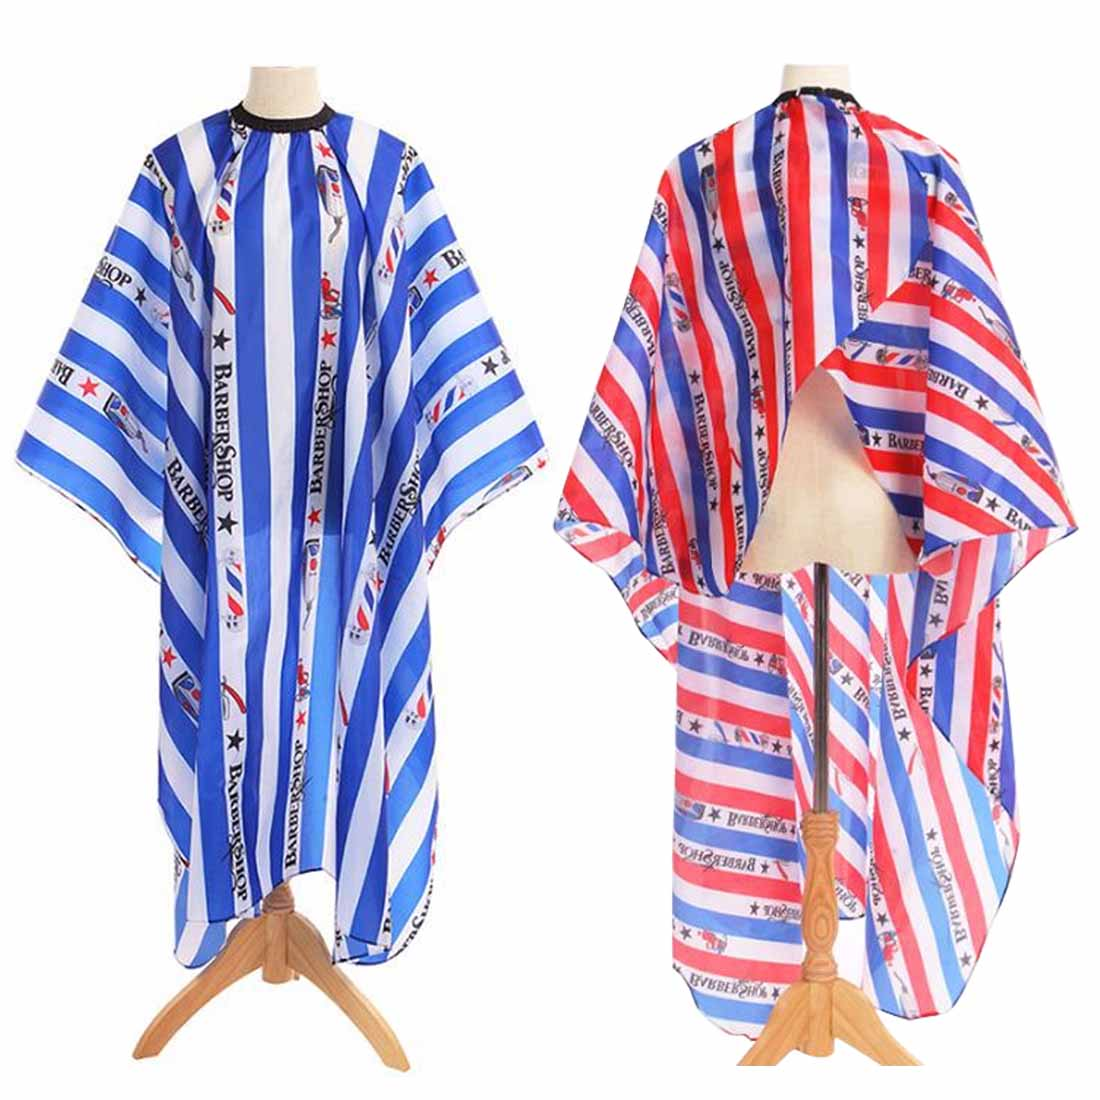 Pro Salon Home Haircutting Wrap Stripe Hairdressing Cape Barber Hairdresser Waterproof Cover Gown Apron Hairstylist Cloth